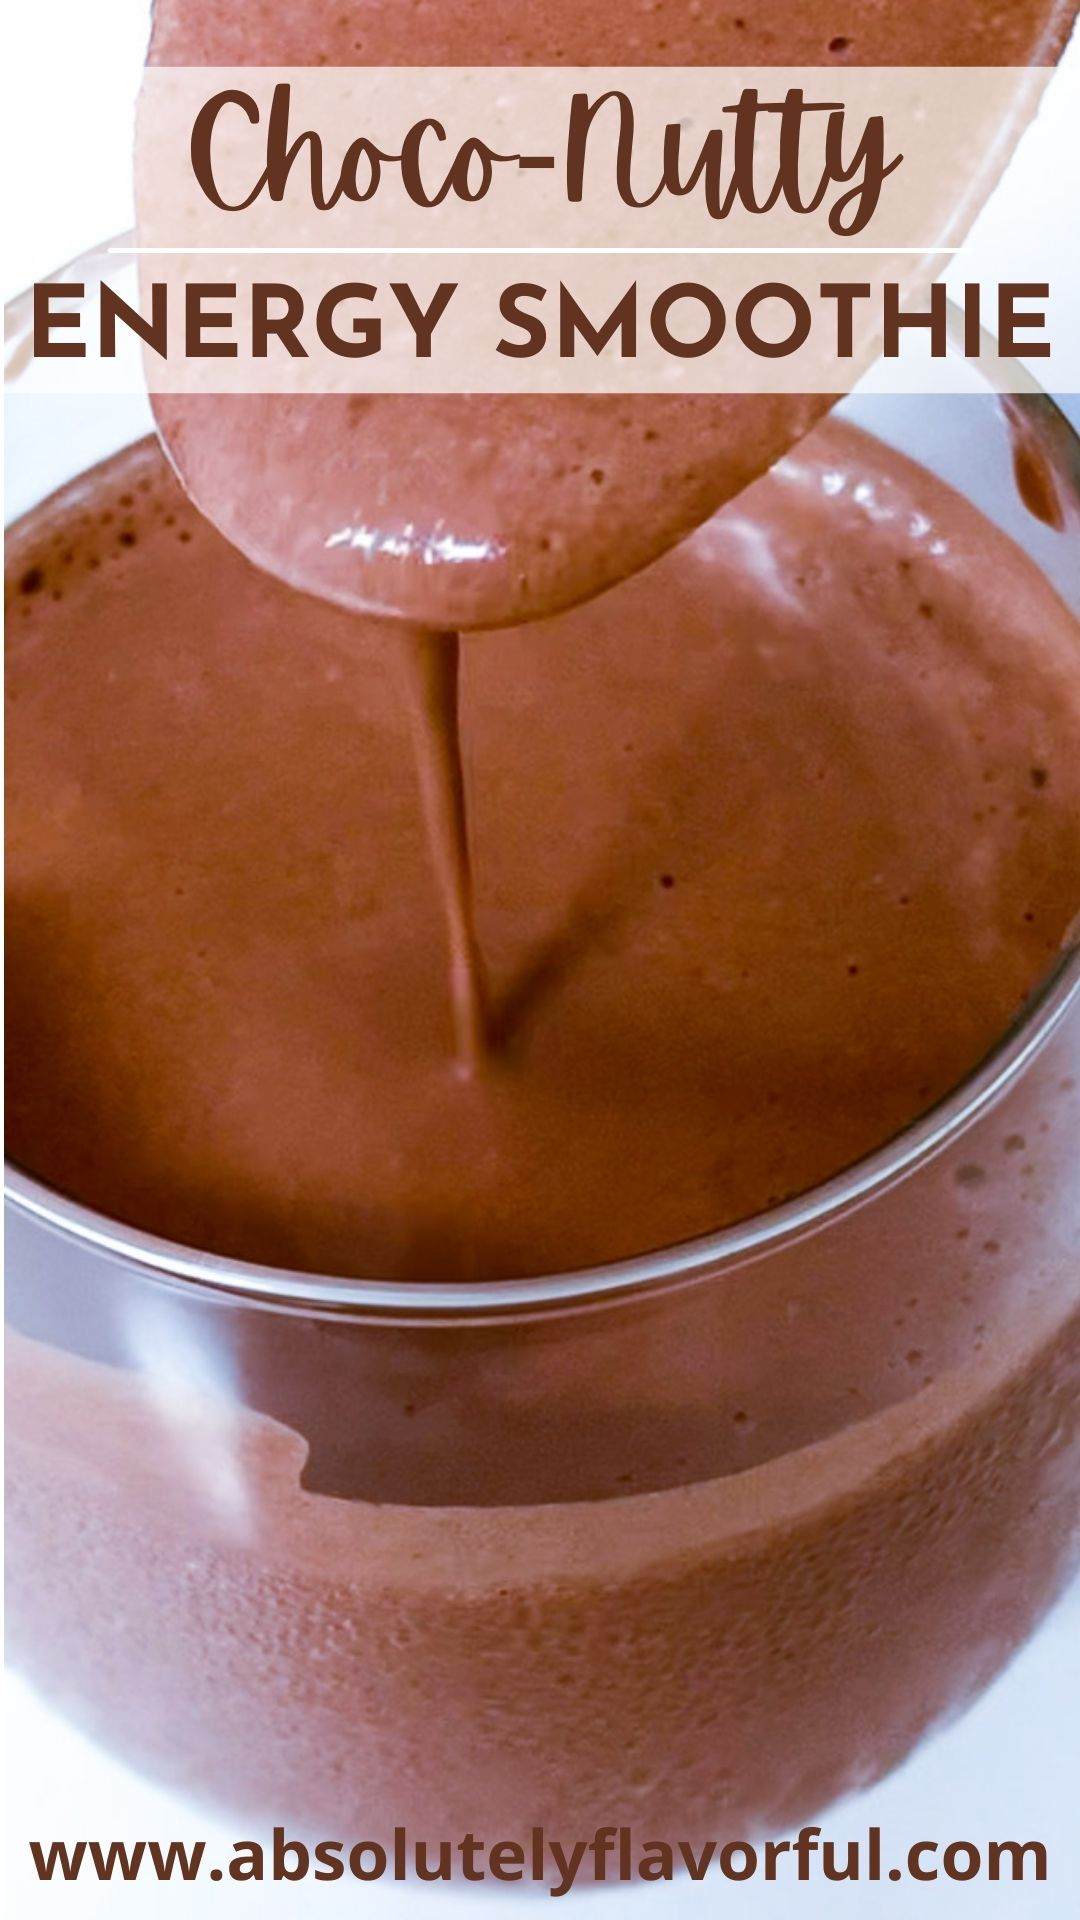 Choco Nutty Energy Smoothie Pin